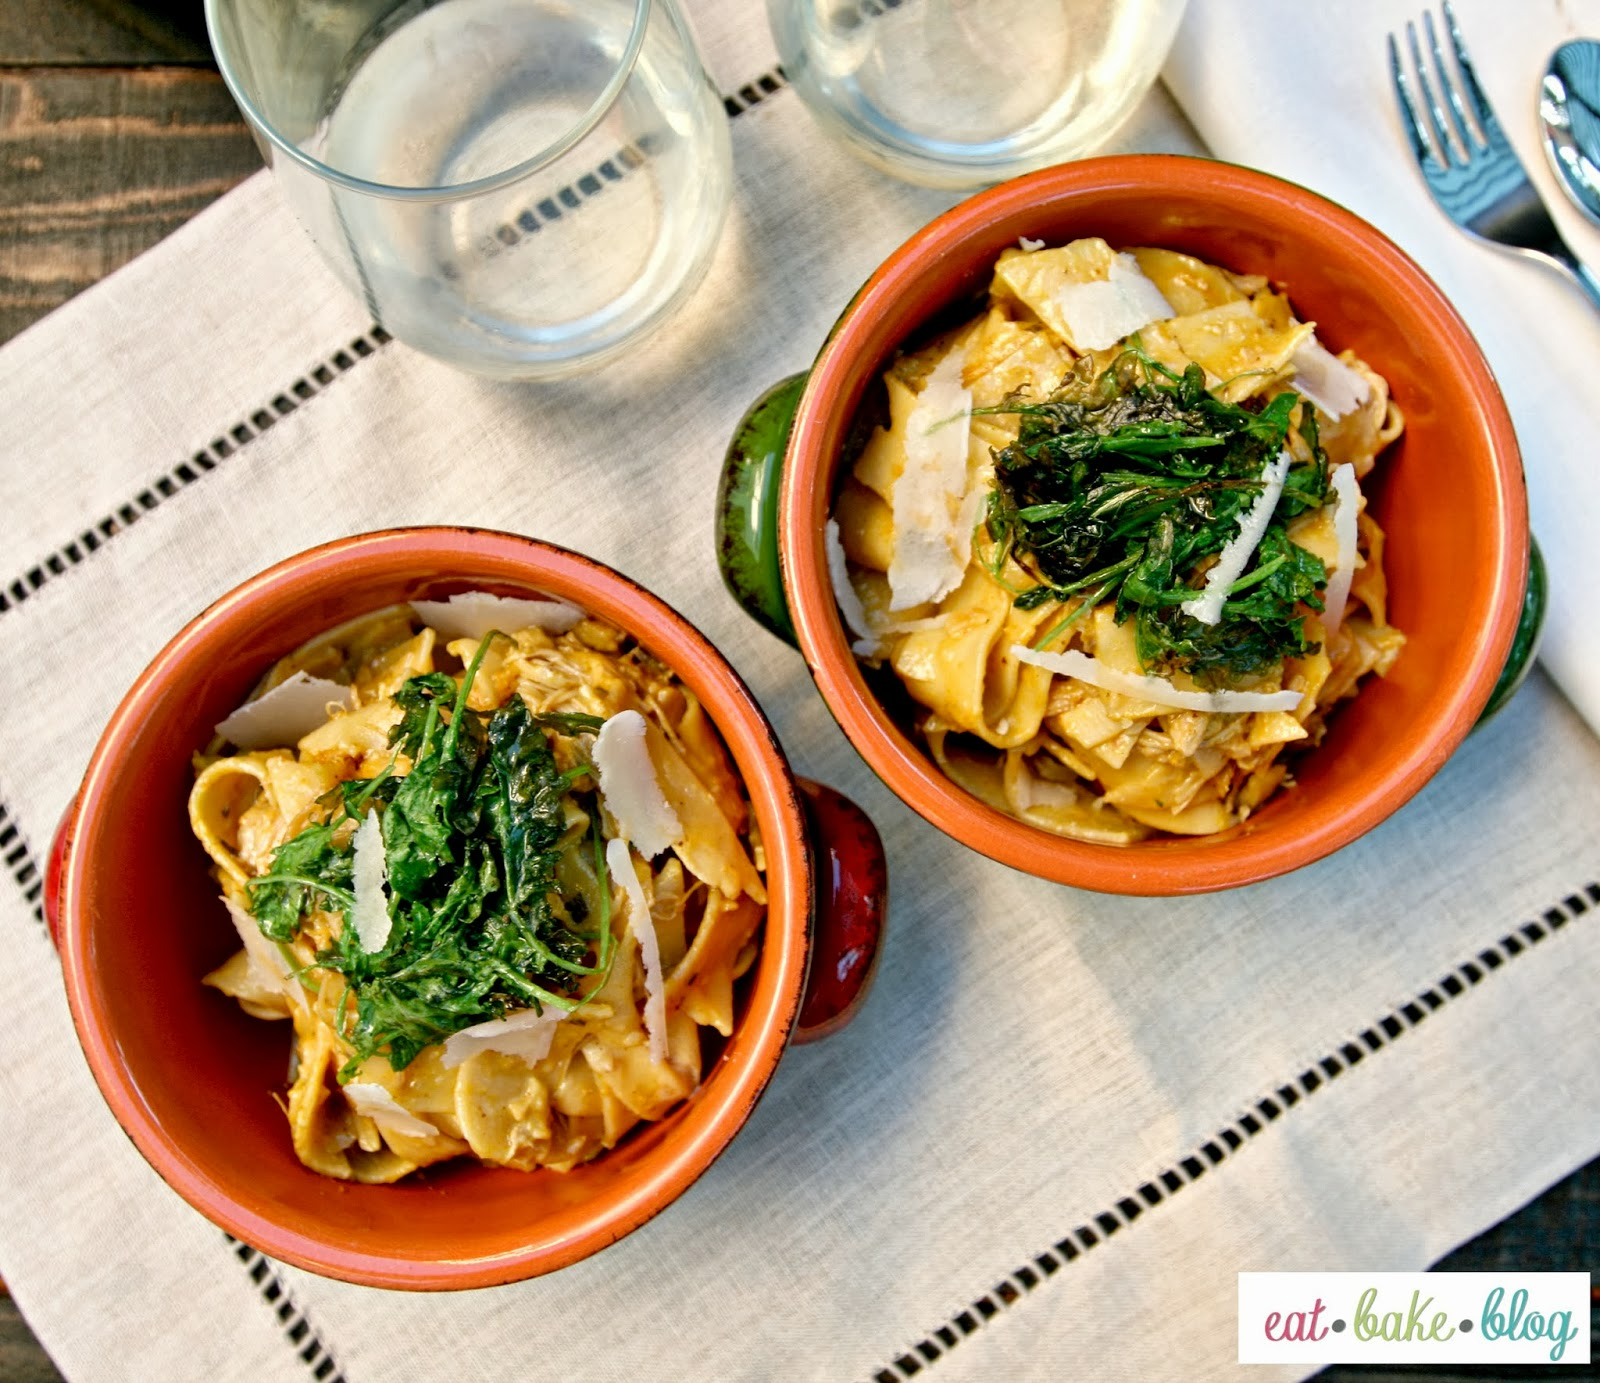 Eat. Bake. Blog.: Creamy Pumpkin Pappardelle With Braised ...